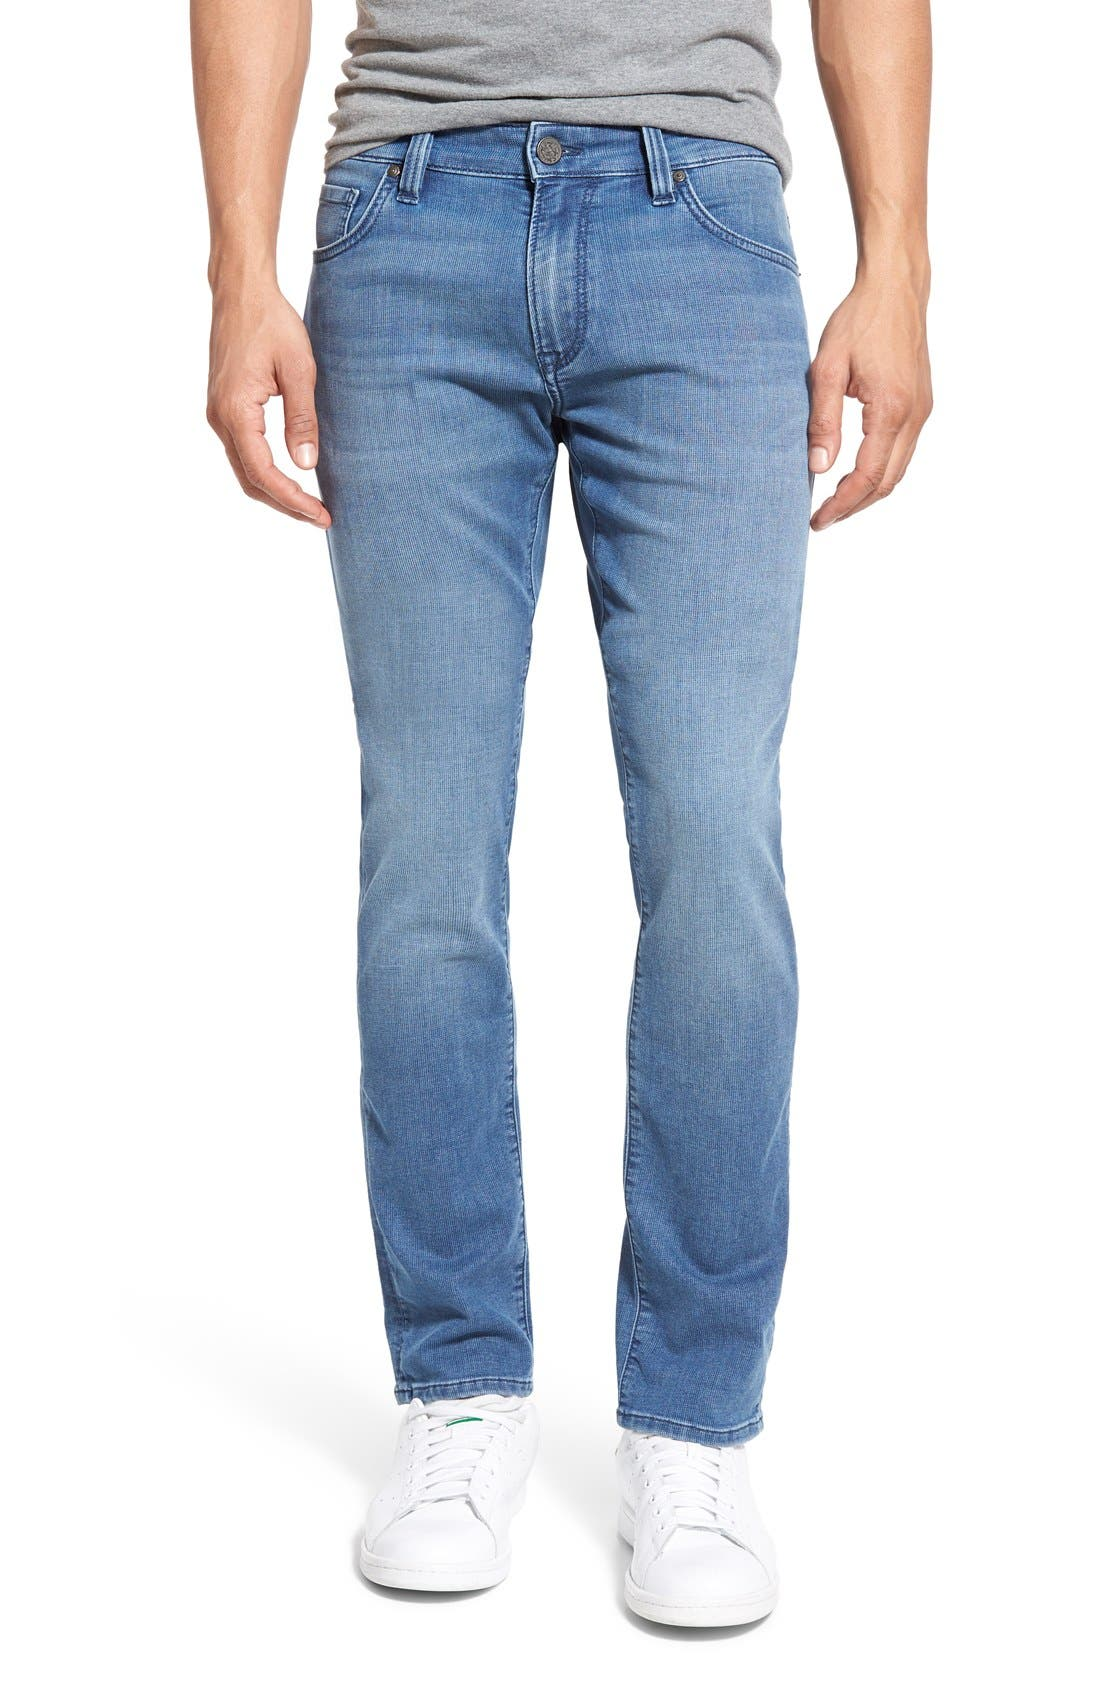 'Courage' Straight Leg Jeans,                         Main,                         color, Light Indigo Sporty